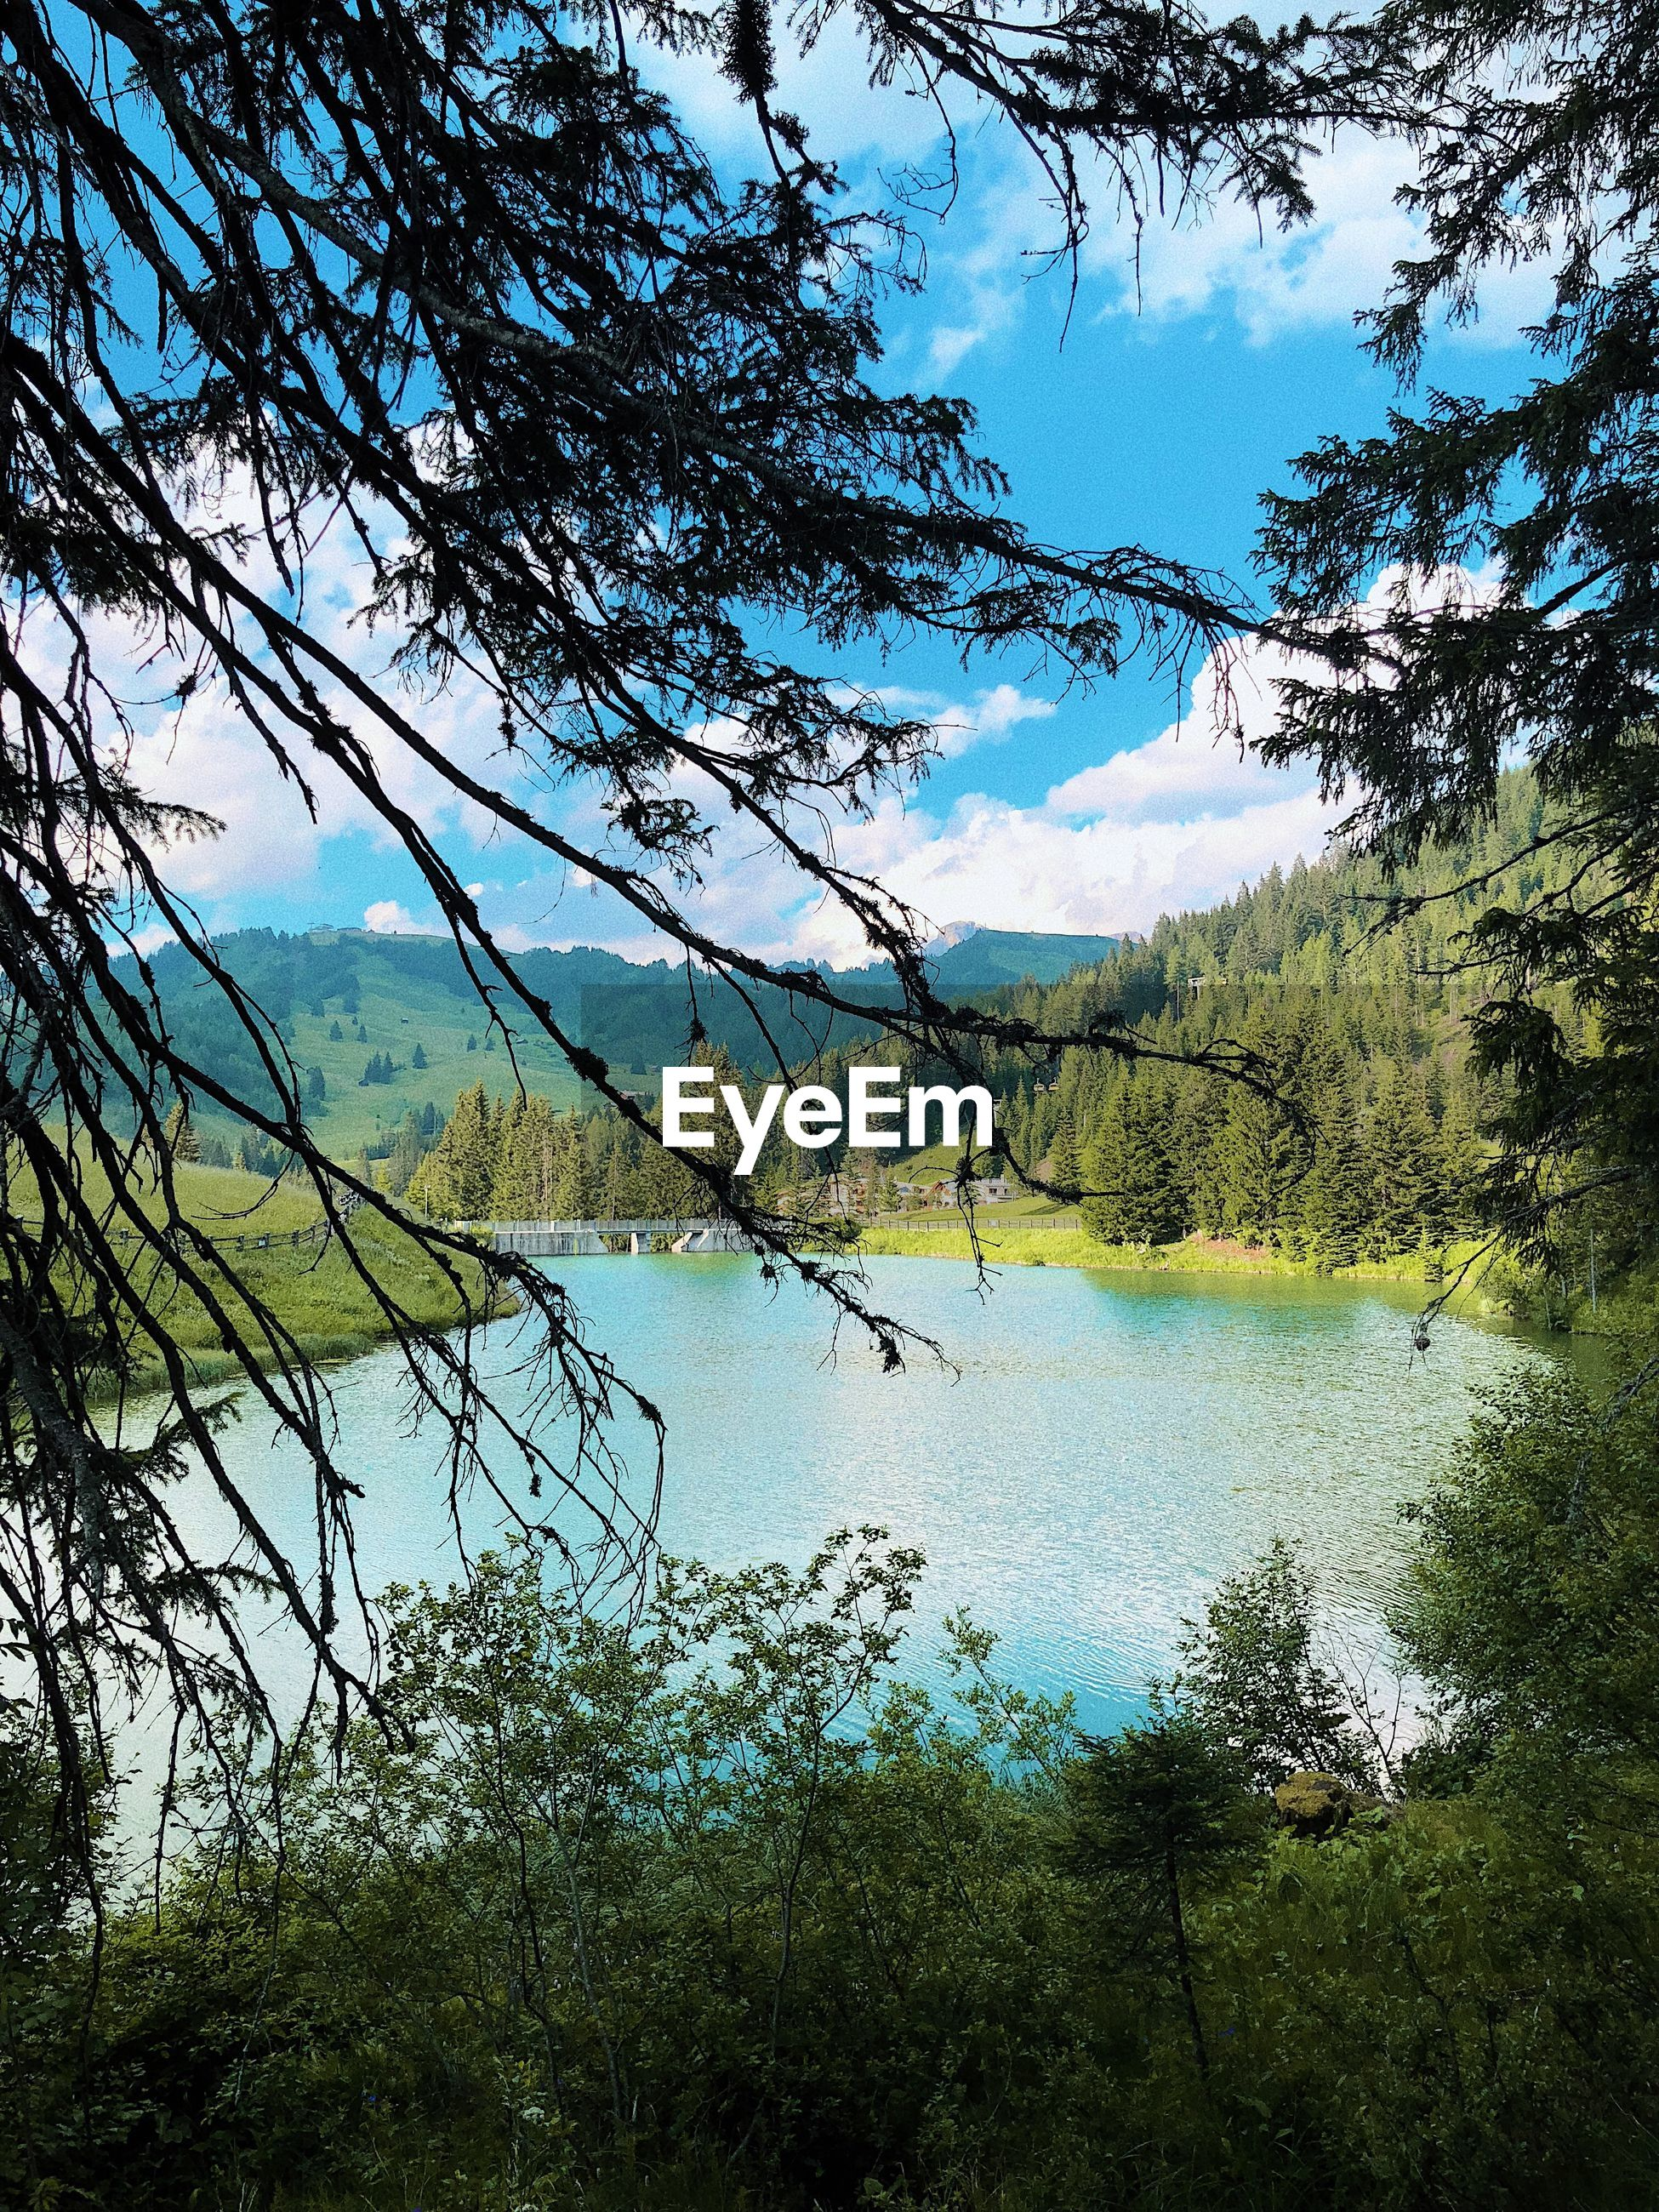 SCENIC VIEW OF LAKE AGAINST SKY AT FOREST